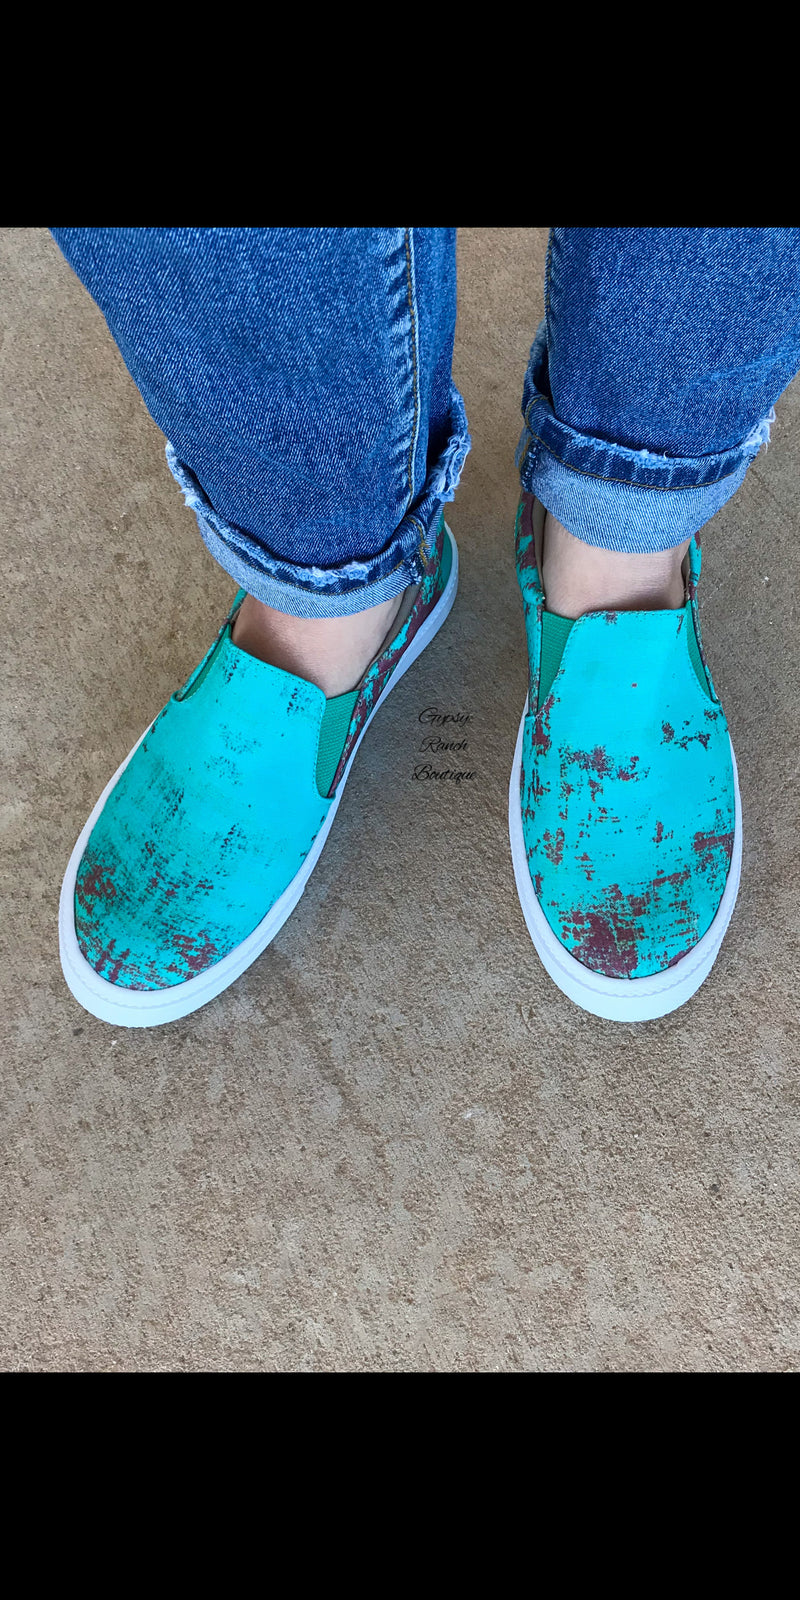 Stockyards Turquoise Patina Slip On Shoes